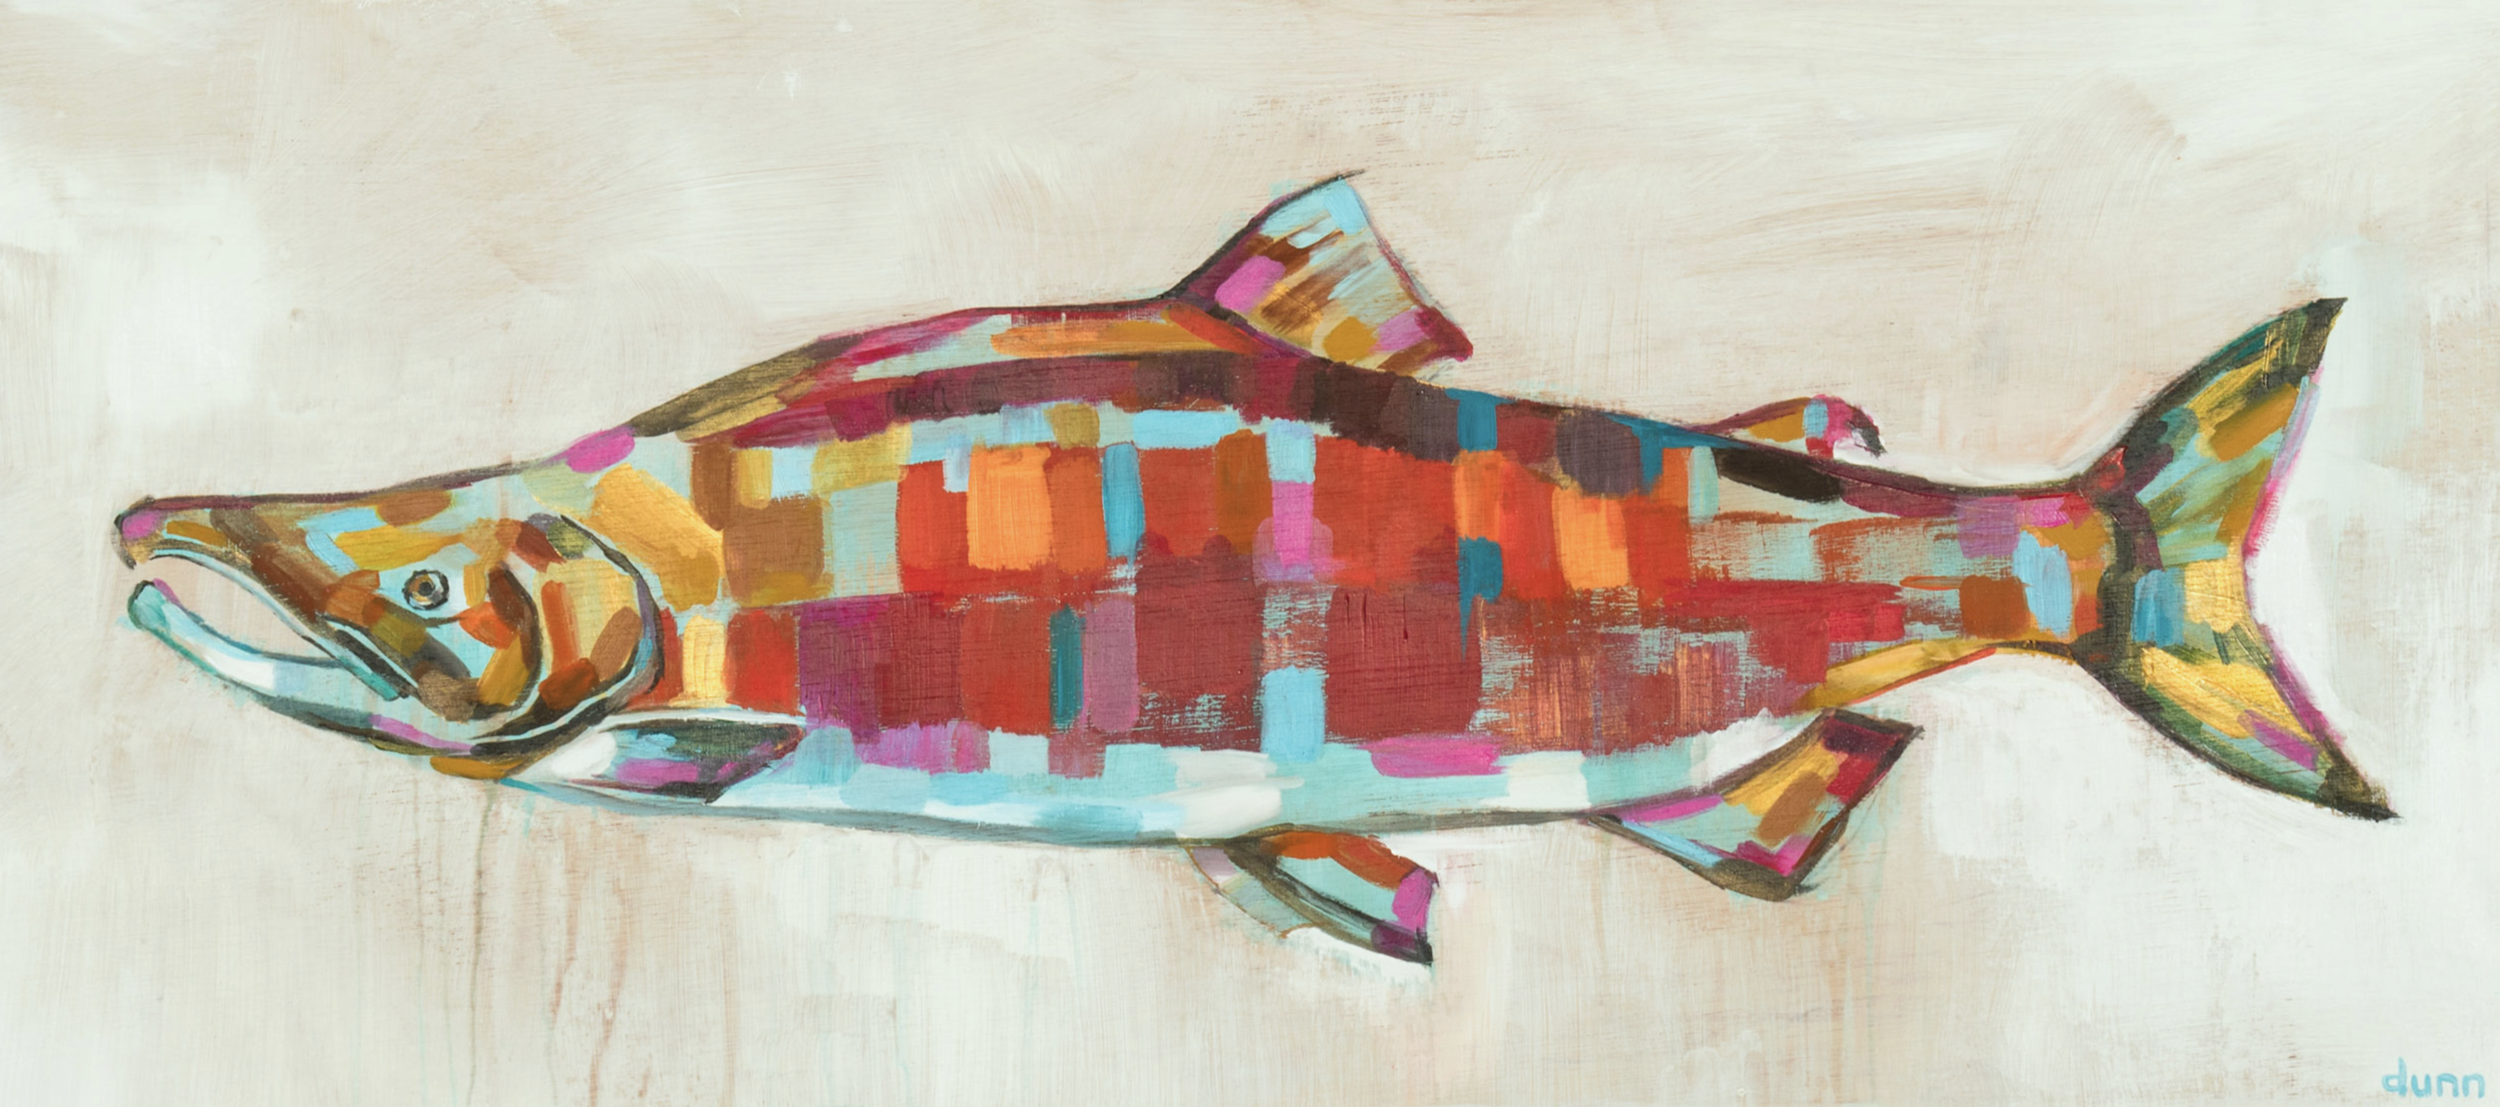 SOCKEYE SALMON, oil on board, 16 x 36 inches -prints available below